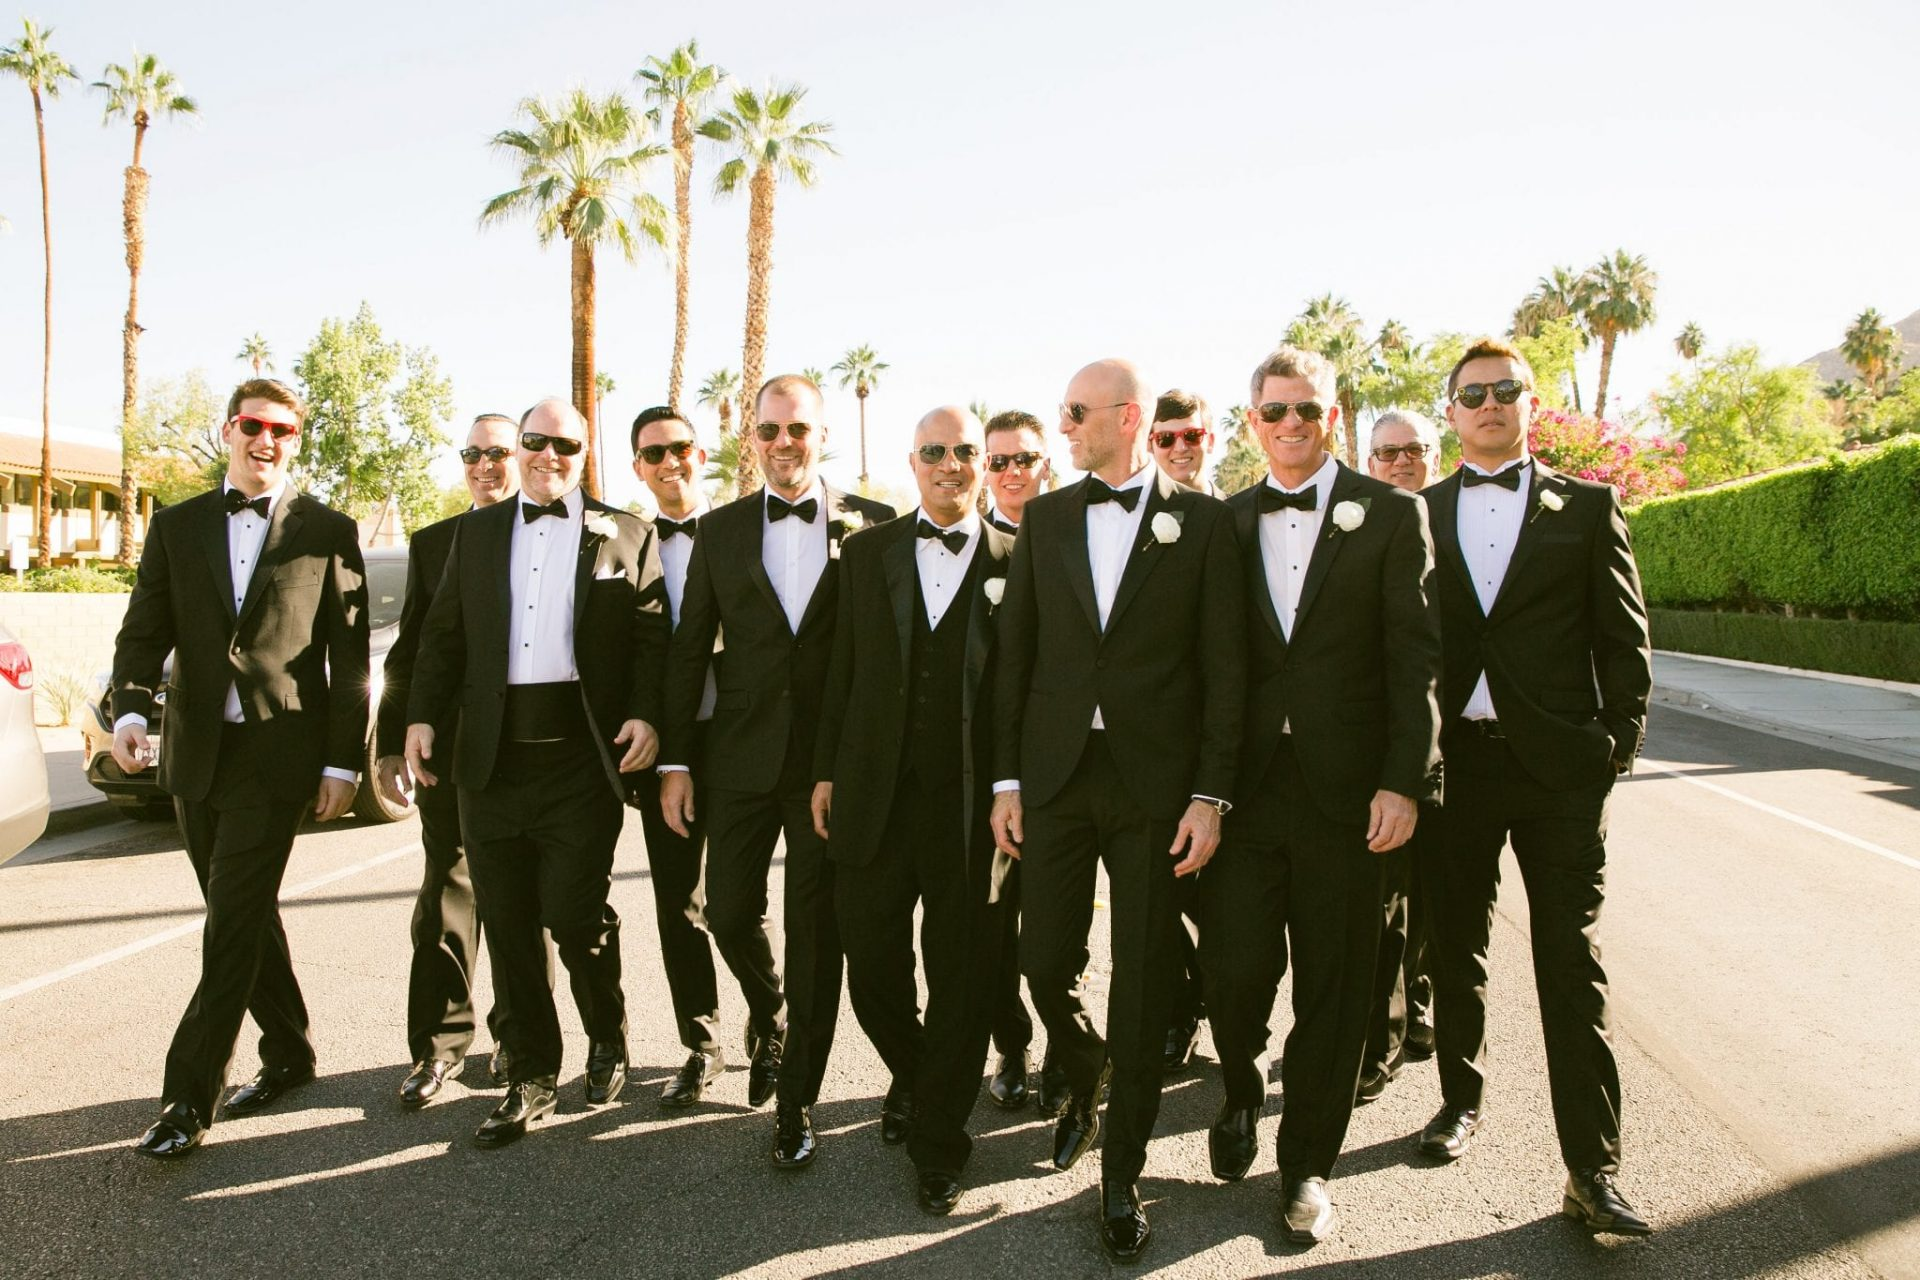 Groomsmen posing for photo outdoors